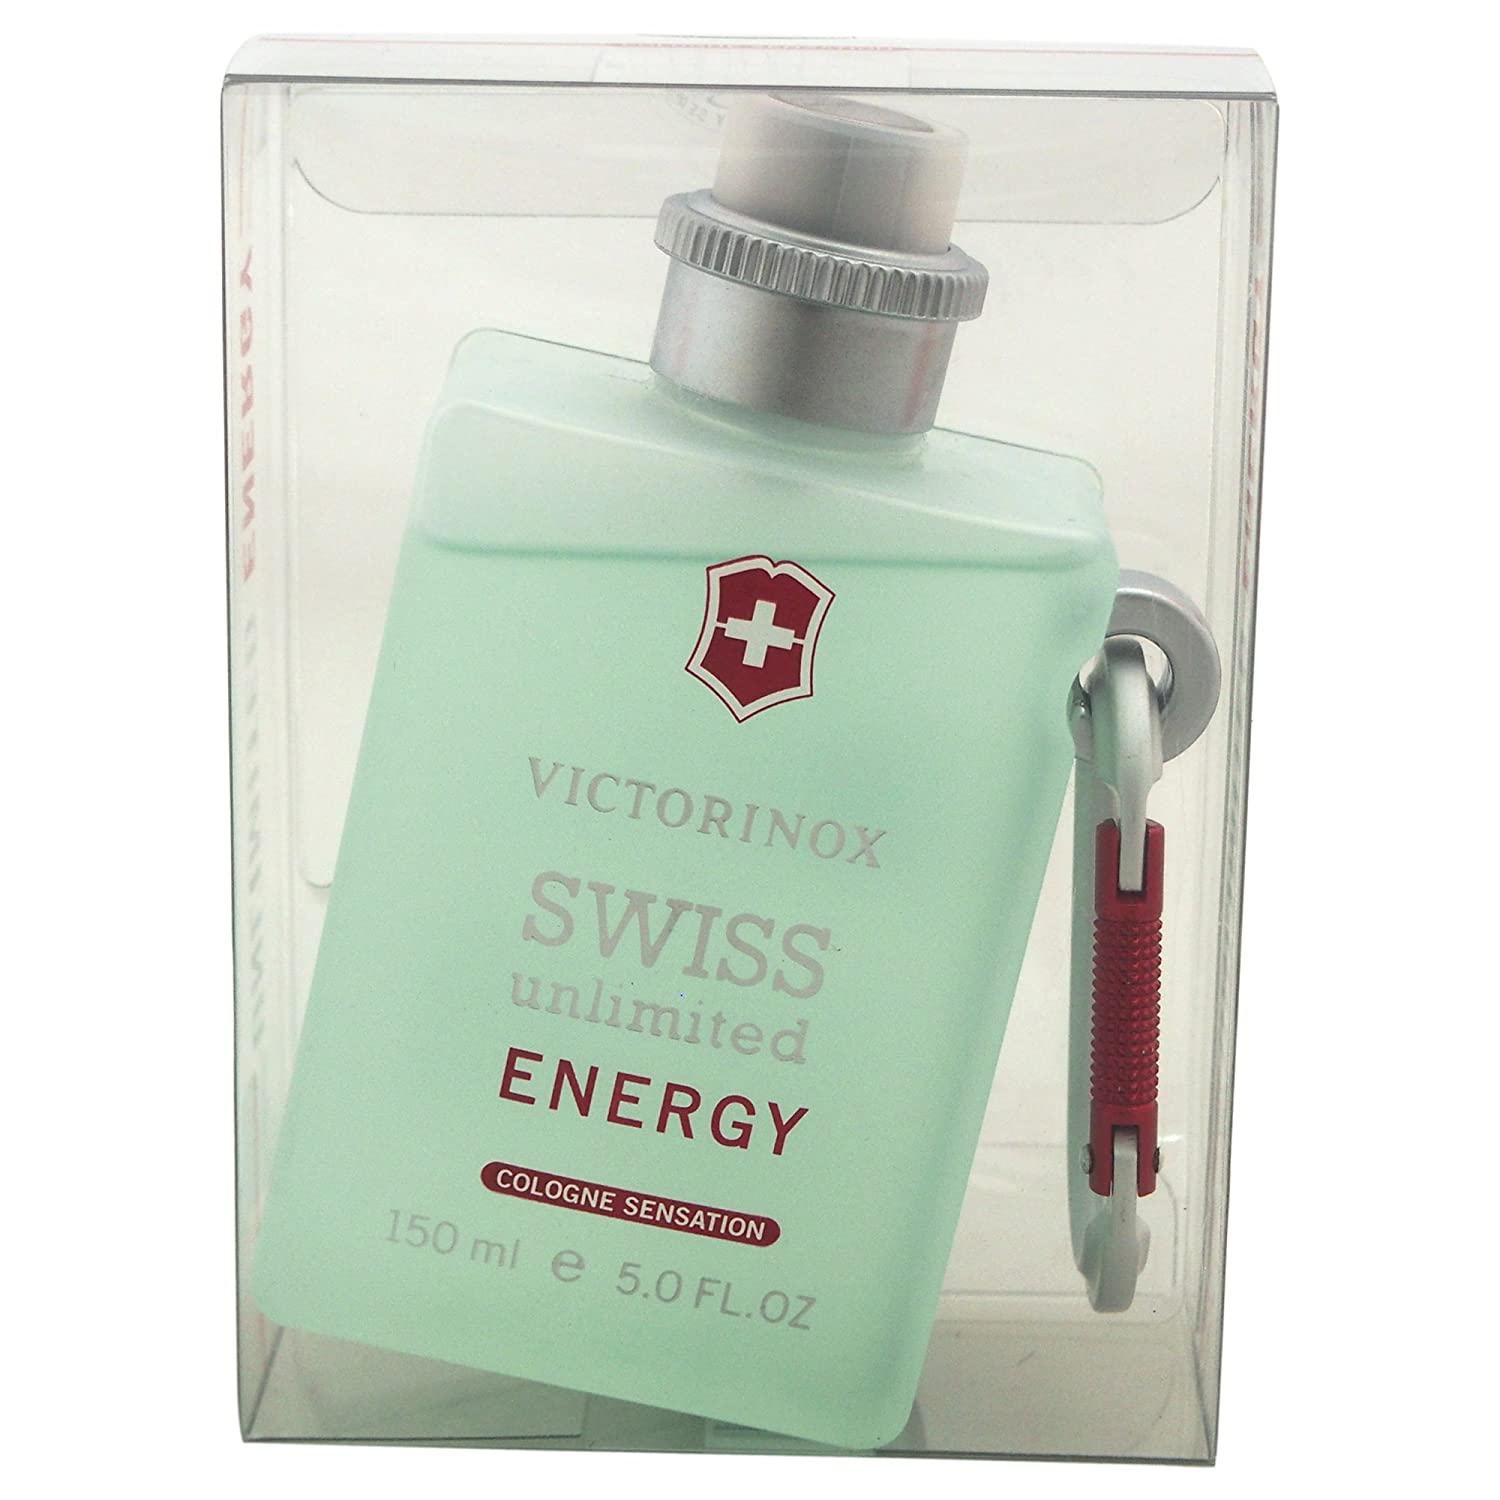 Victorinox Swiss Unlimited Energy By Victorinox Cologne Spray 5 Oz P40548